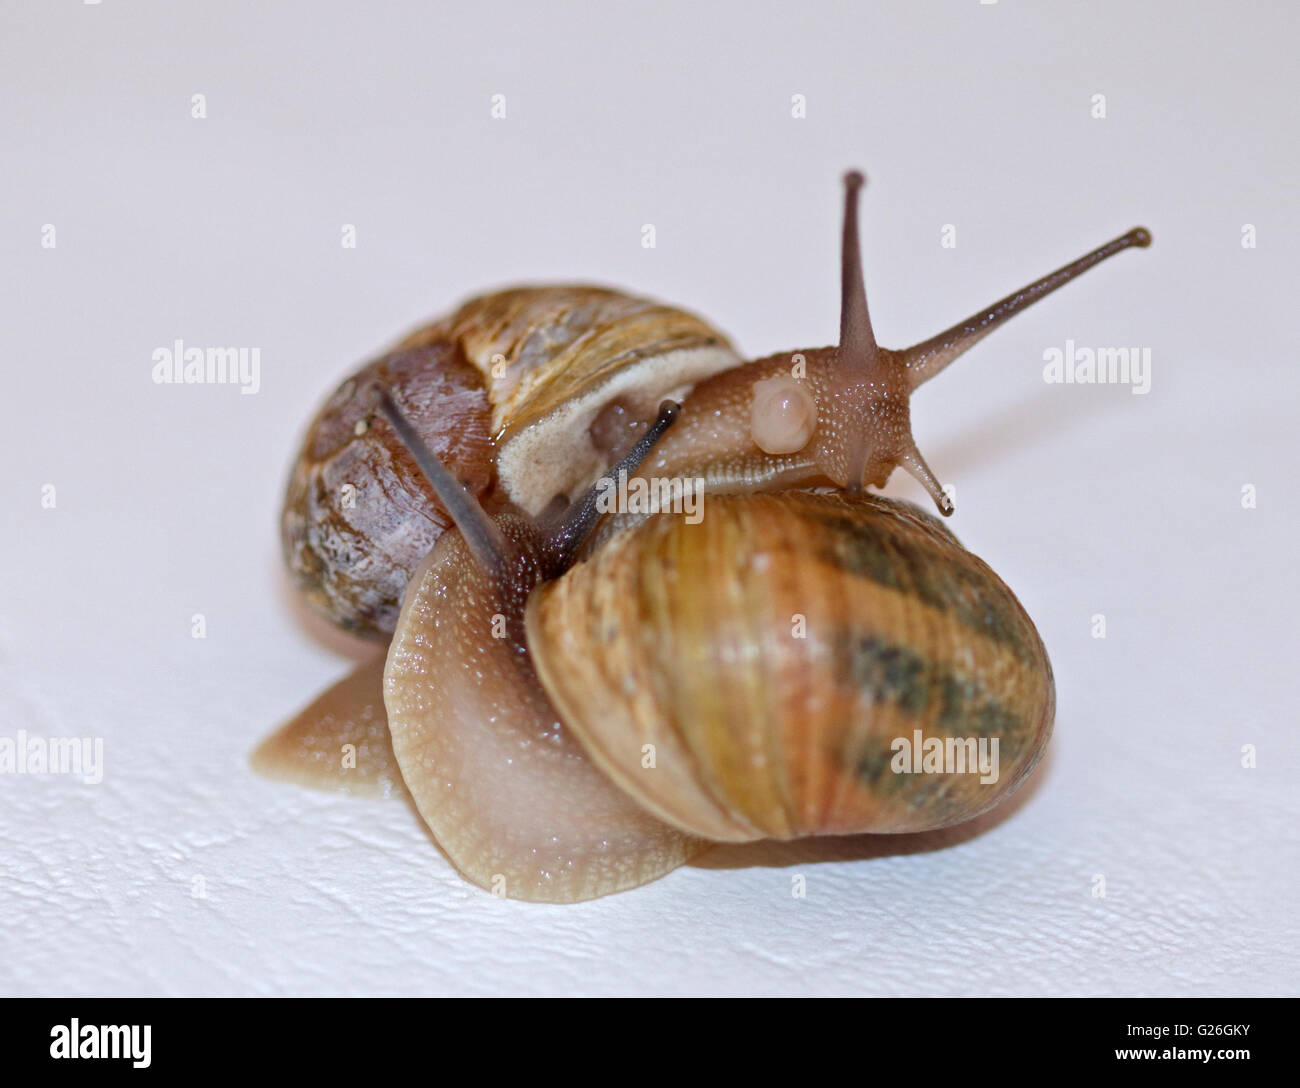 Pair of Common or Garden Snails (helix aspersa/cornu aspersum) performing a courtship ritual - Stock Image